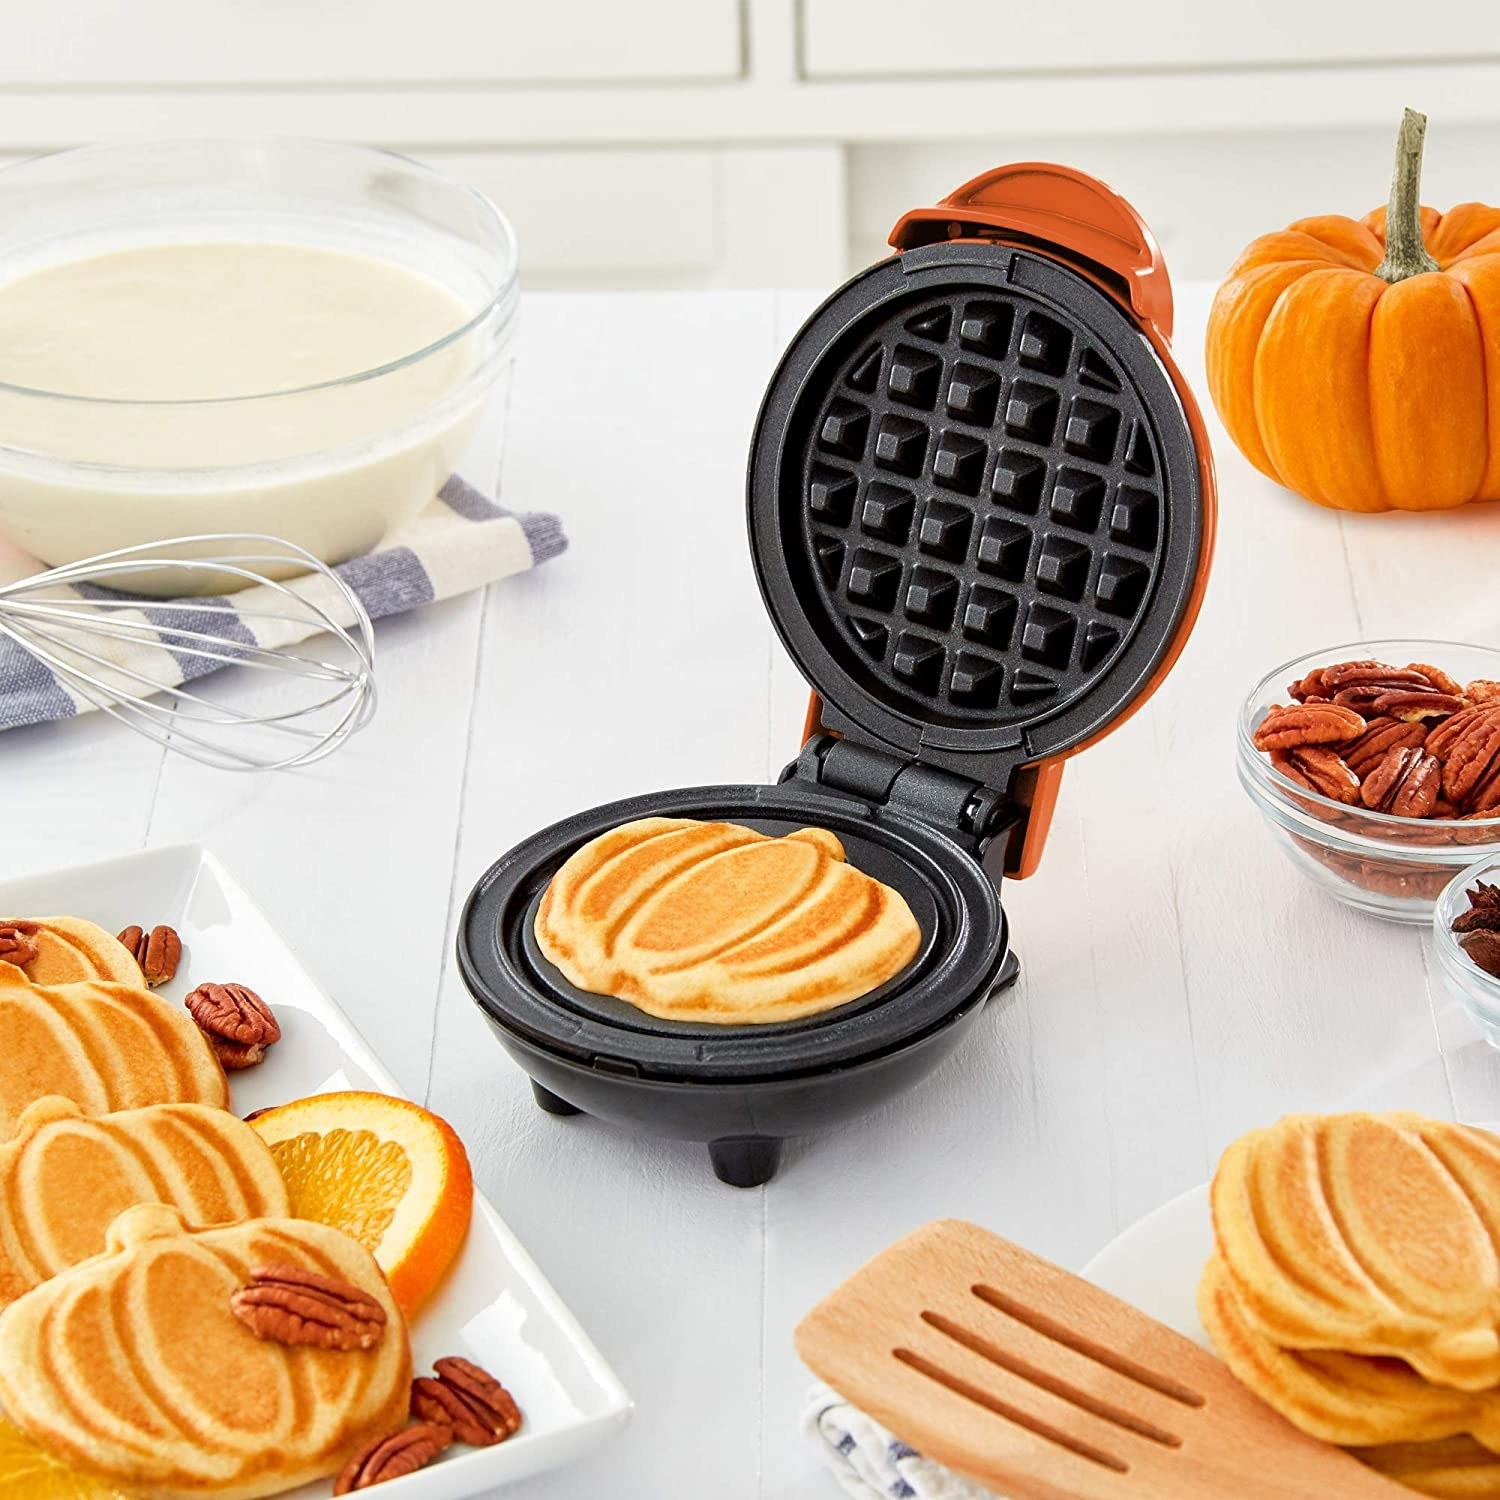 A mini waffle maker with a pumpkin shaped waffle in it